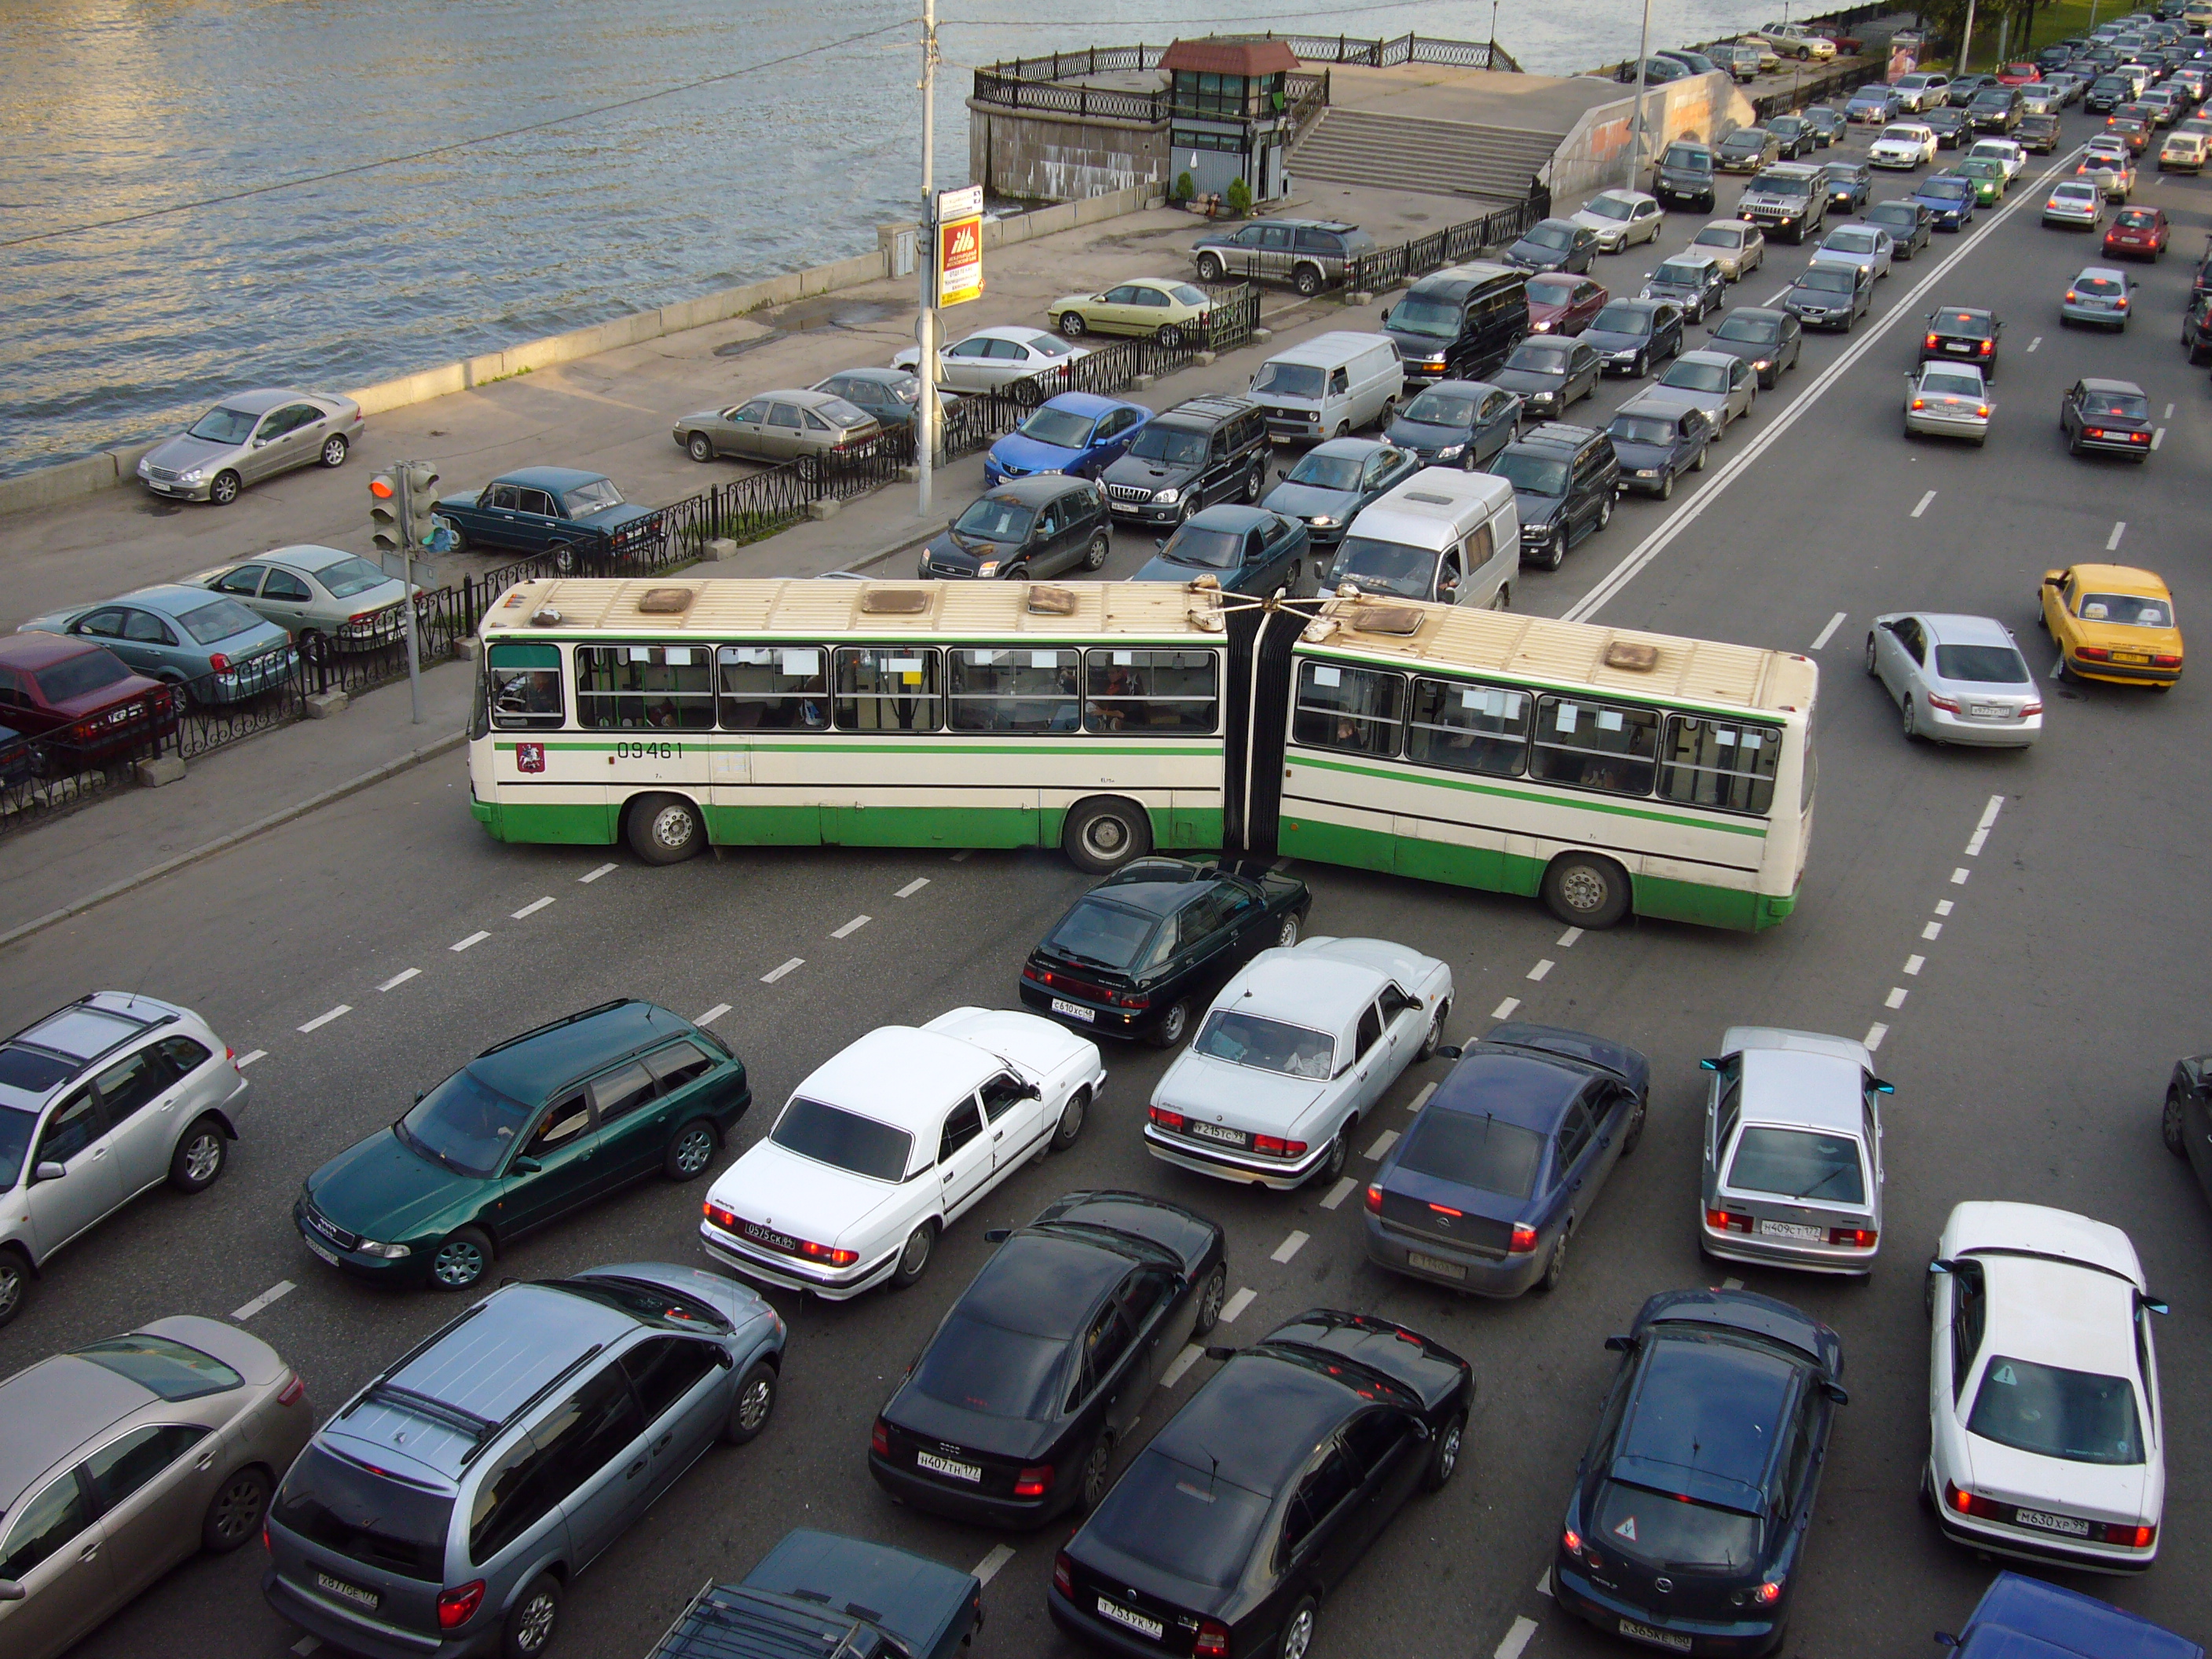 http://upload.wikimedia.org/wikipedia/commons/a/a4/Moscow_traffic_congestion.JPG